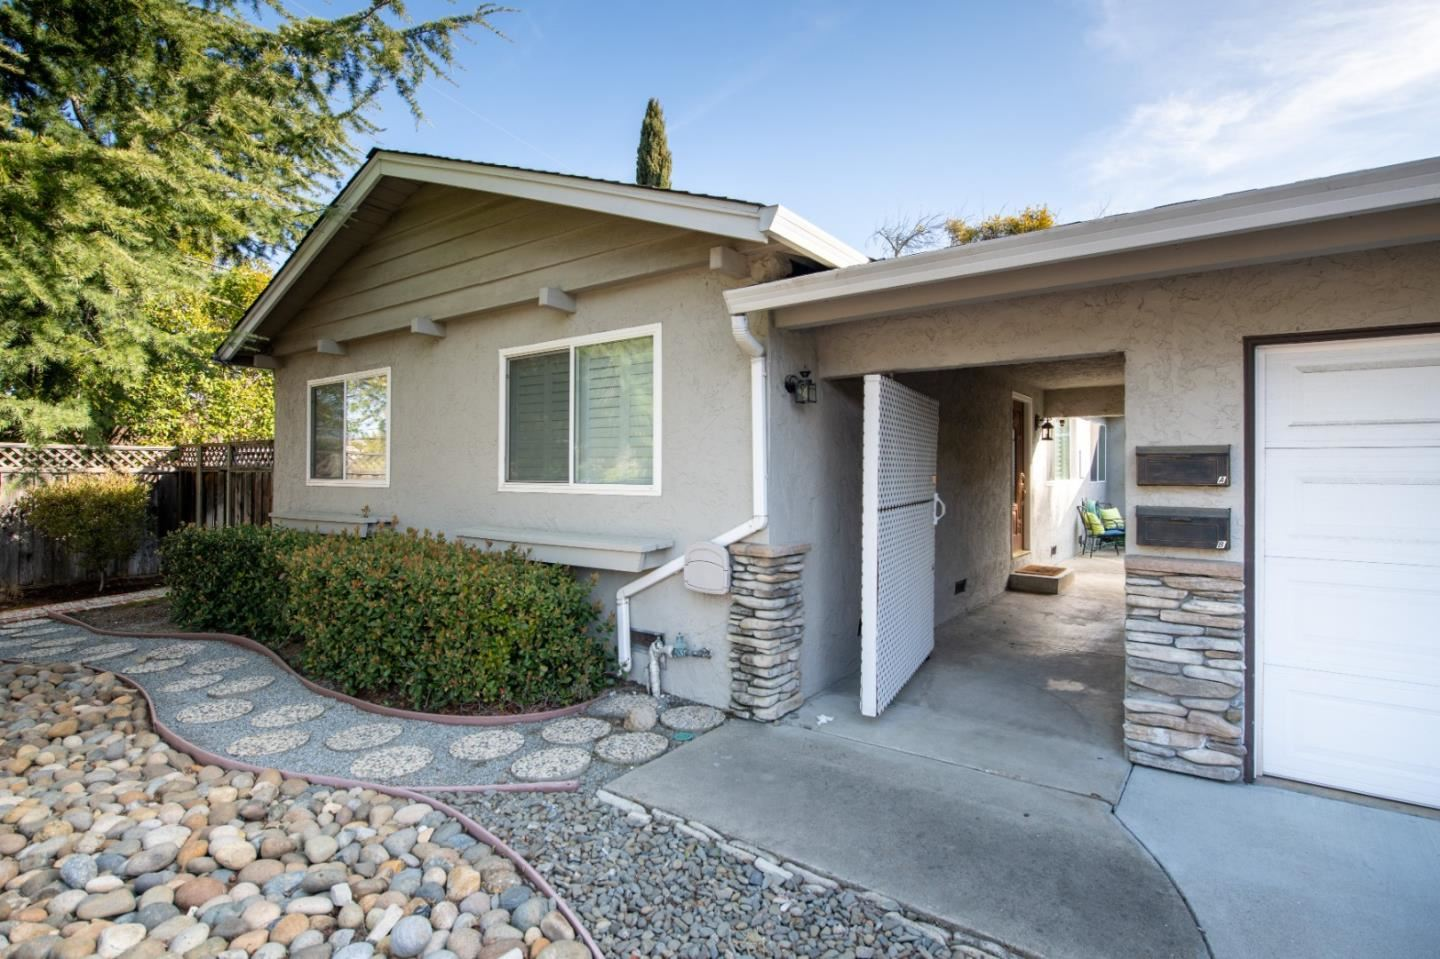 Photo for 10250 South Foothill Boulevard #A-B, CUPERTINO, CA 95014 (MLS # ML81853477)